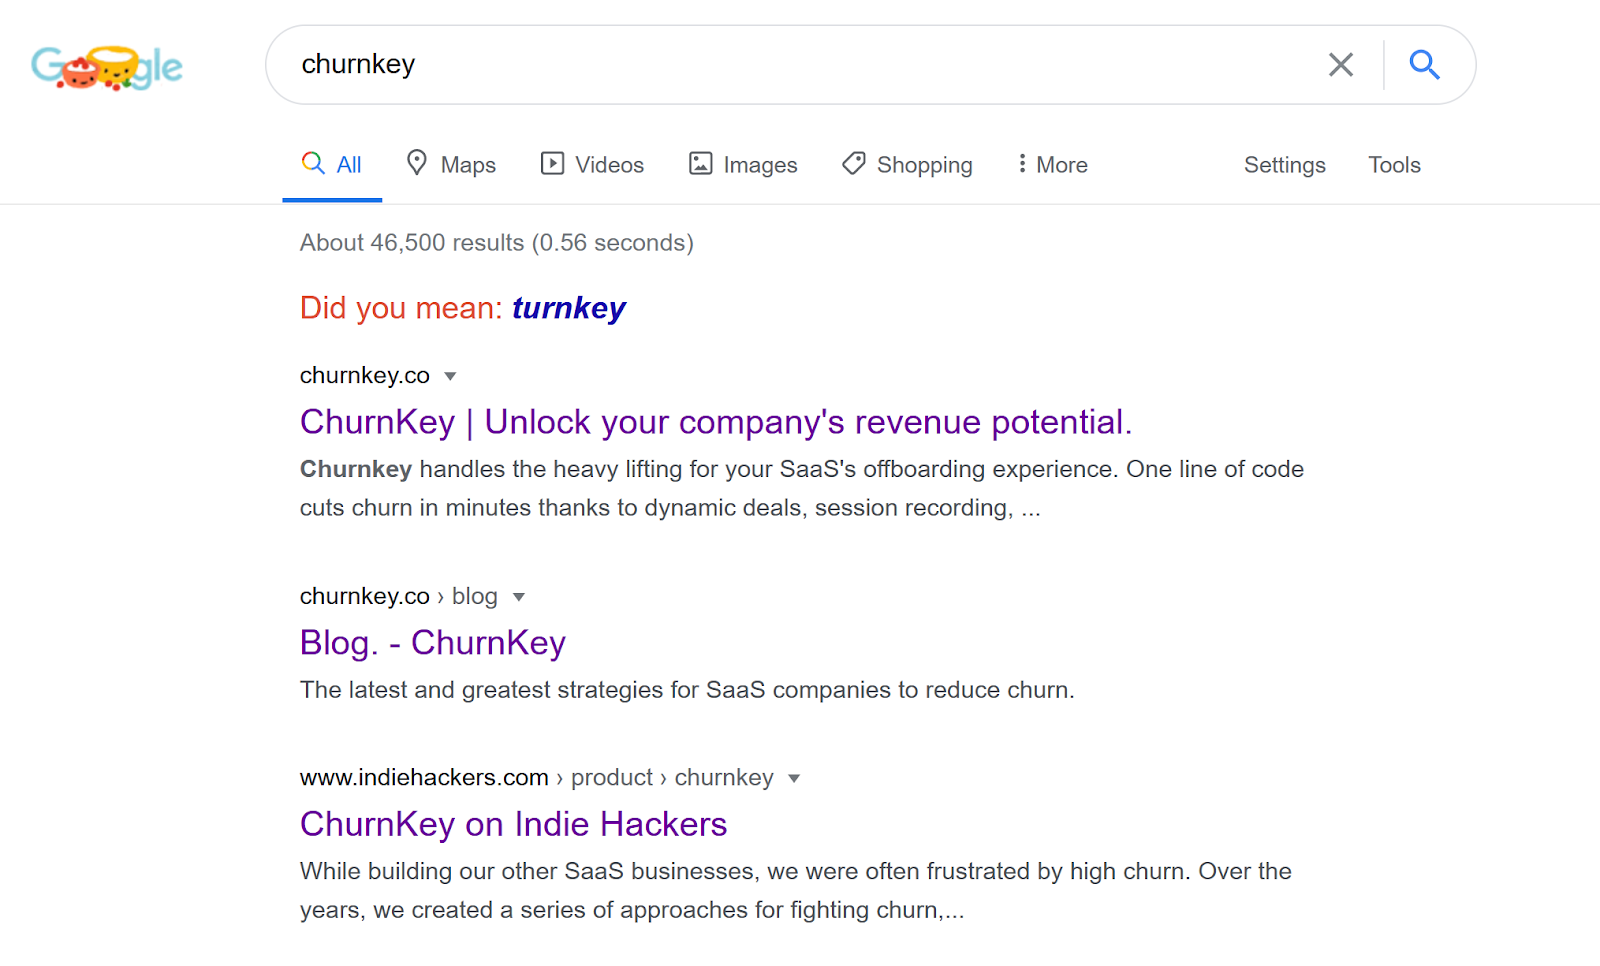 churnkey-search-results